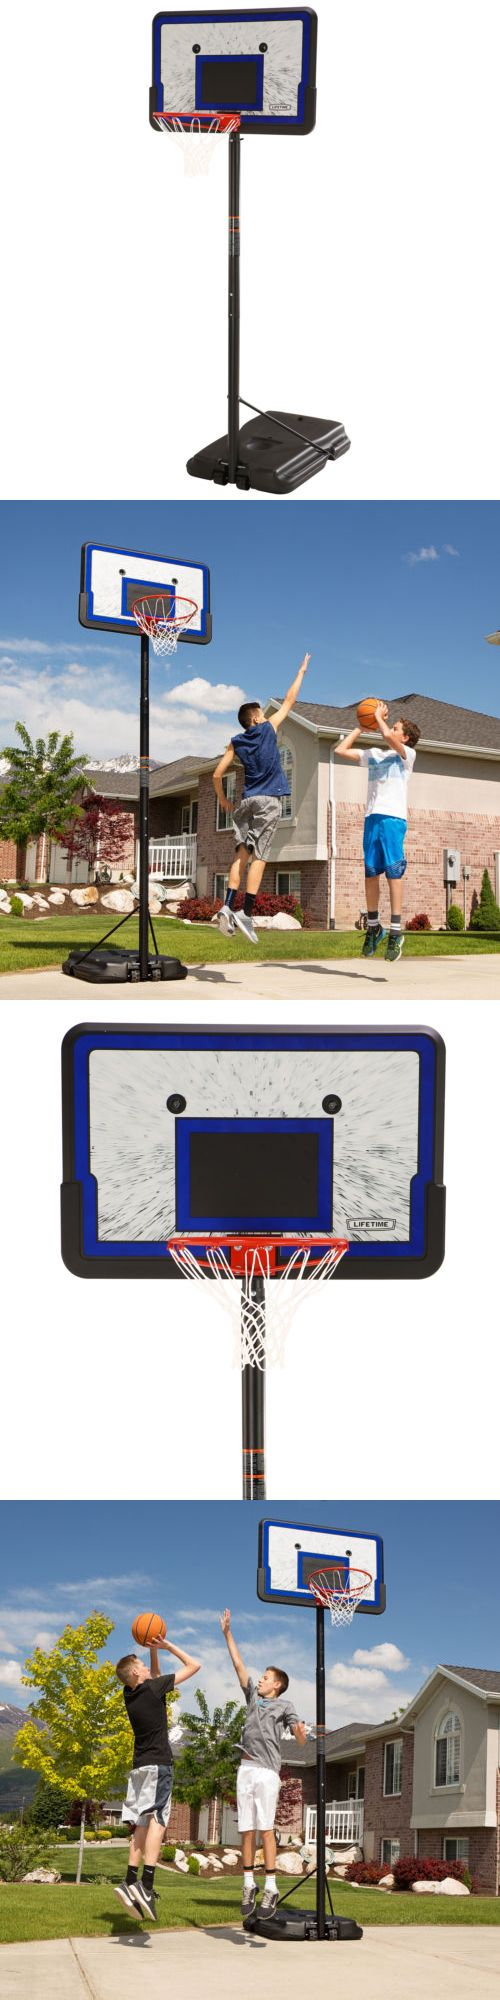 Backboard Systems 21196: Lifetime 1221 Pro Court Height Adjustable Portable Basketball System, 44 Inch -> BUY IT NOW ONLY: $115.53 on eBay!